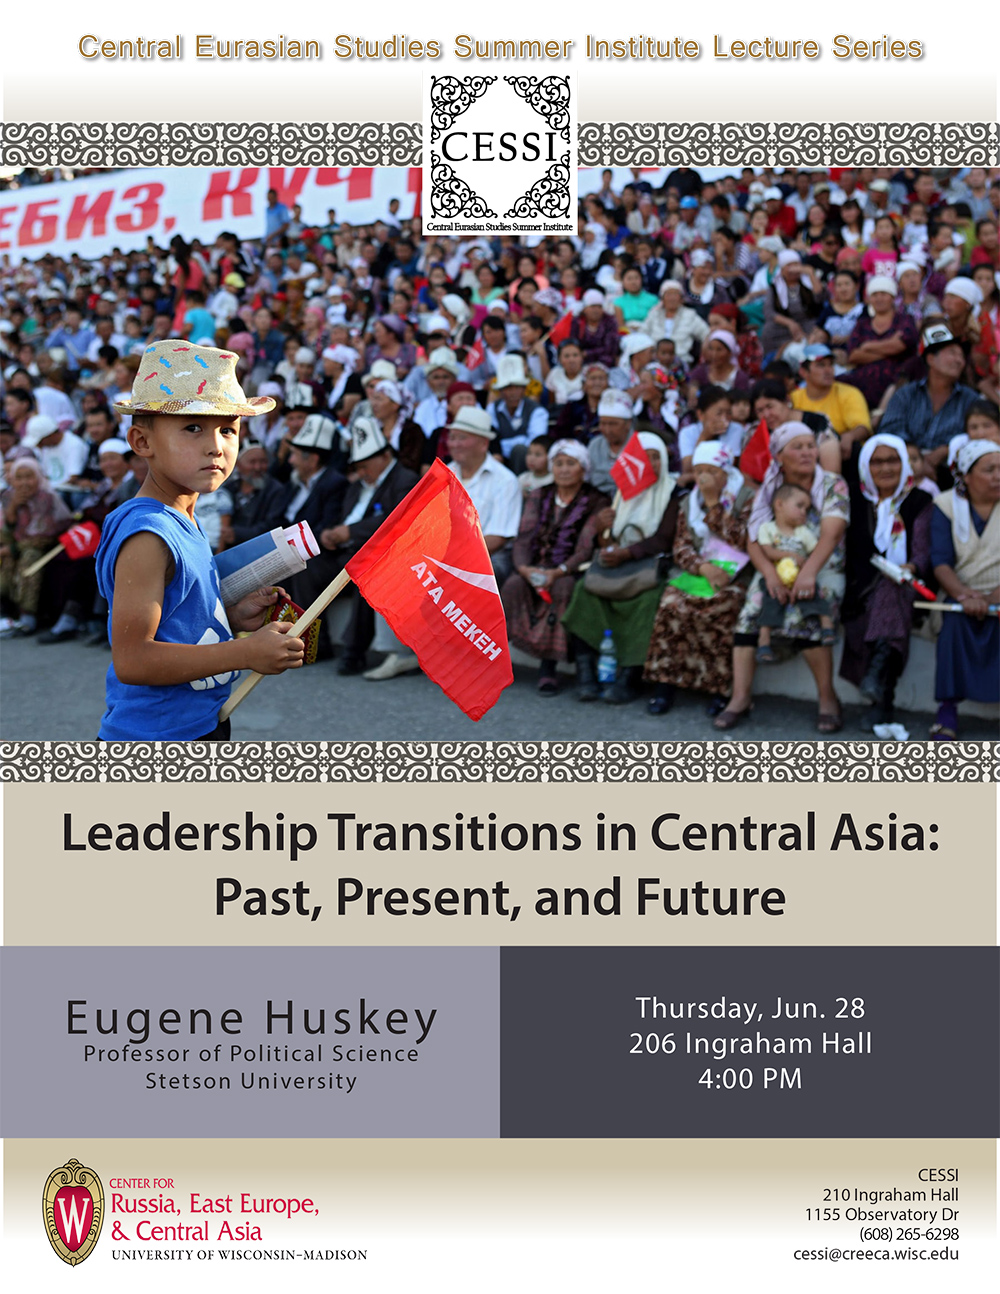 Poster for Huskey lecture featuring little hatted boy holding flag in front of crowd in grandstands